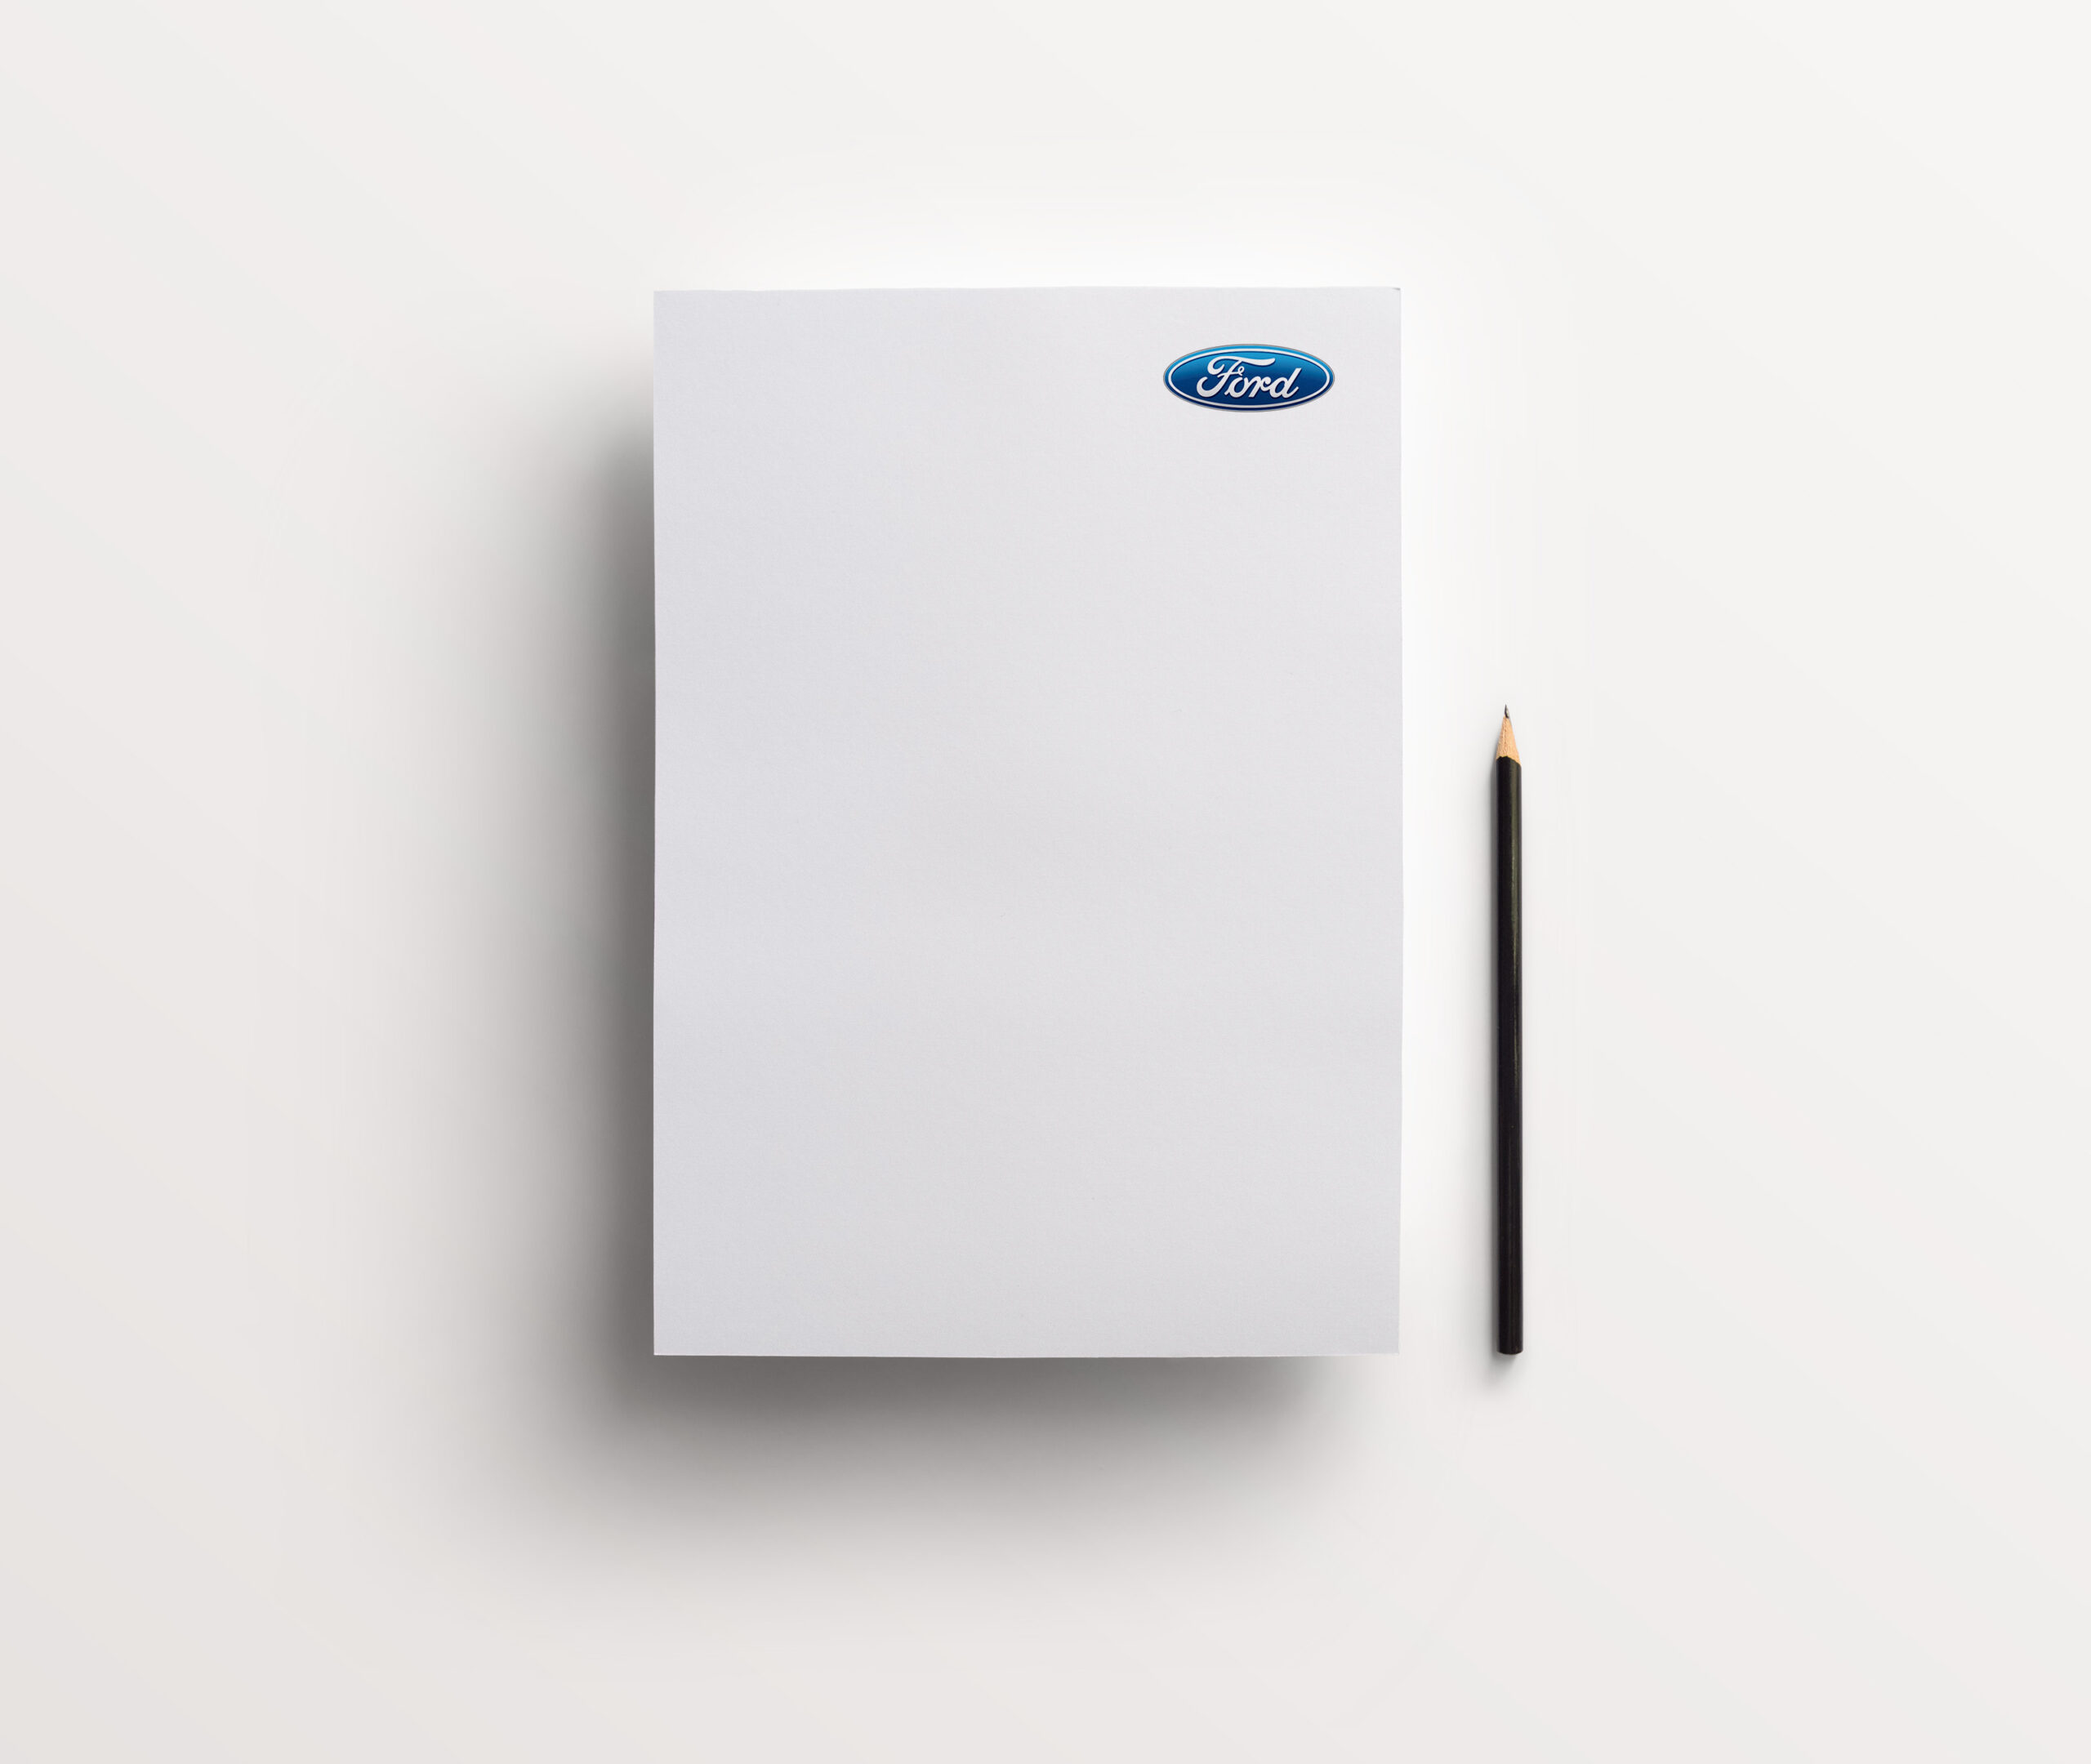 Ford Letterhead with Pencil